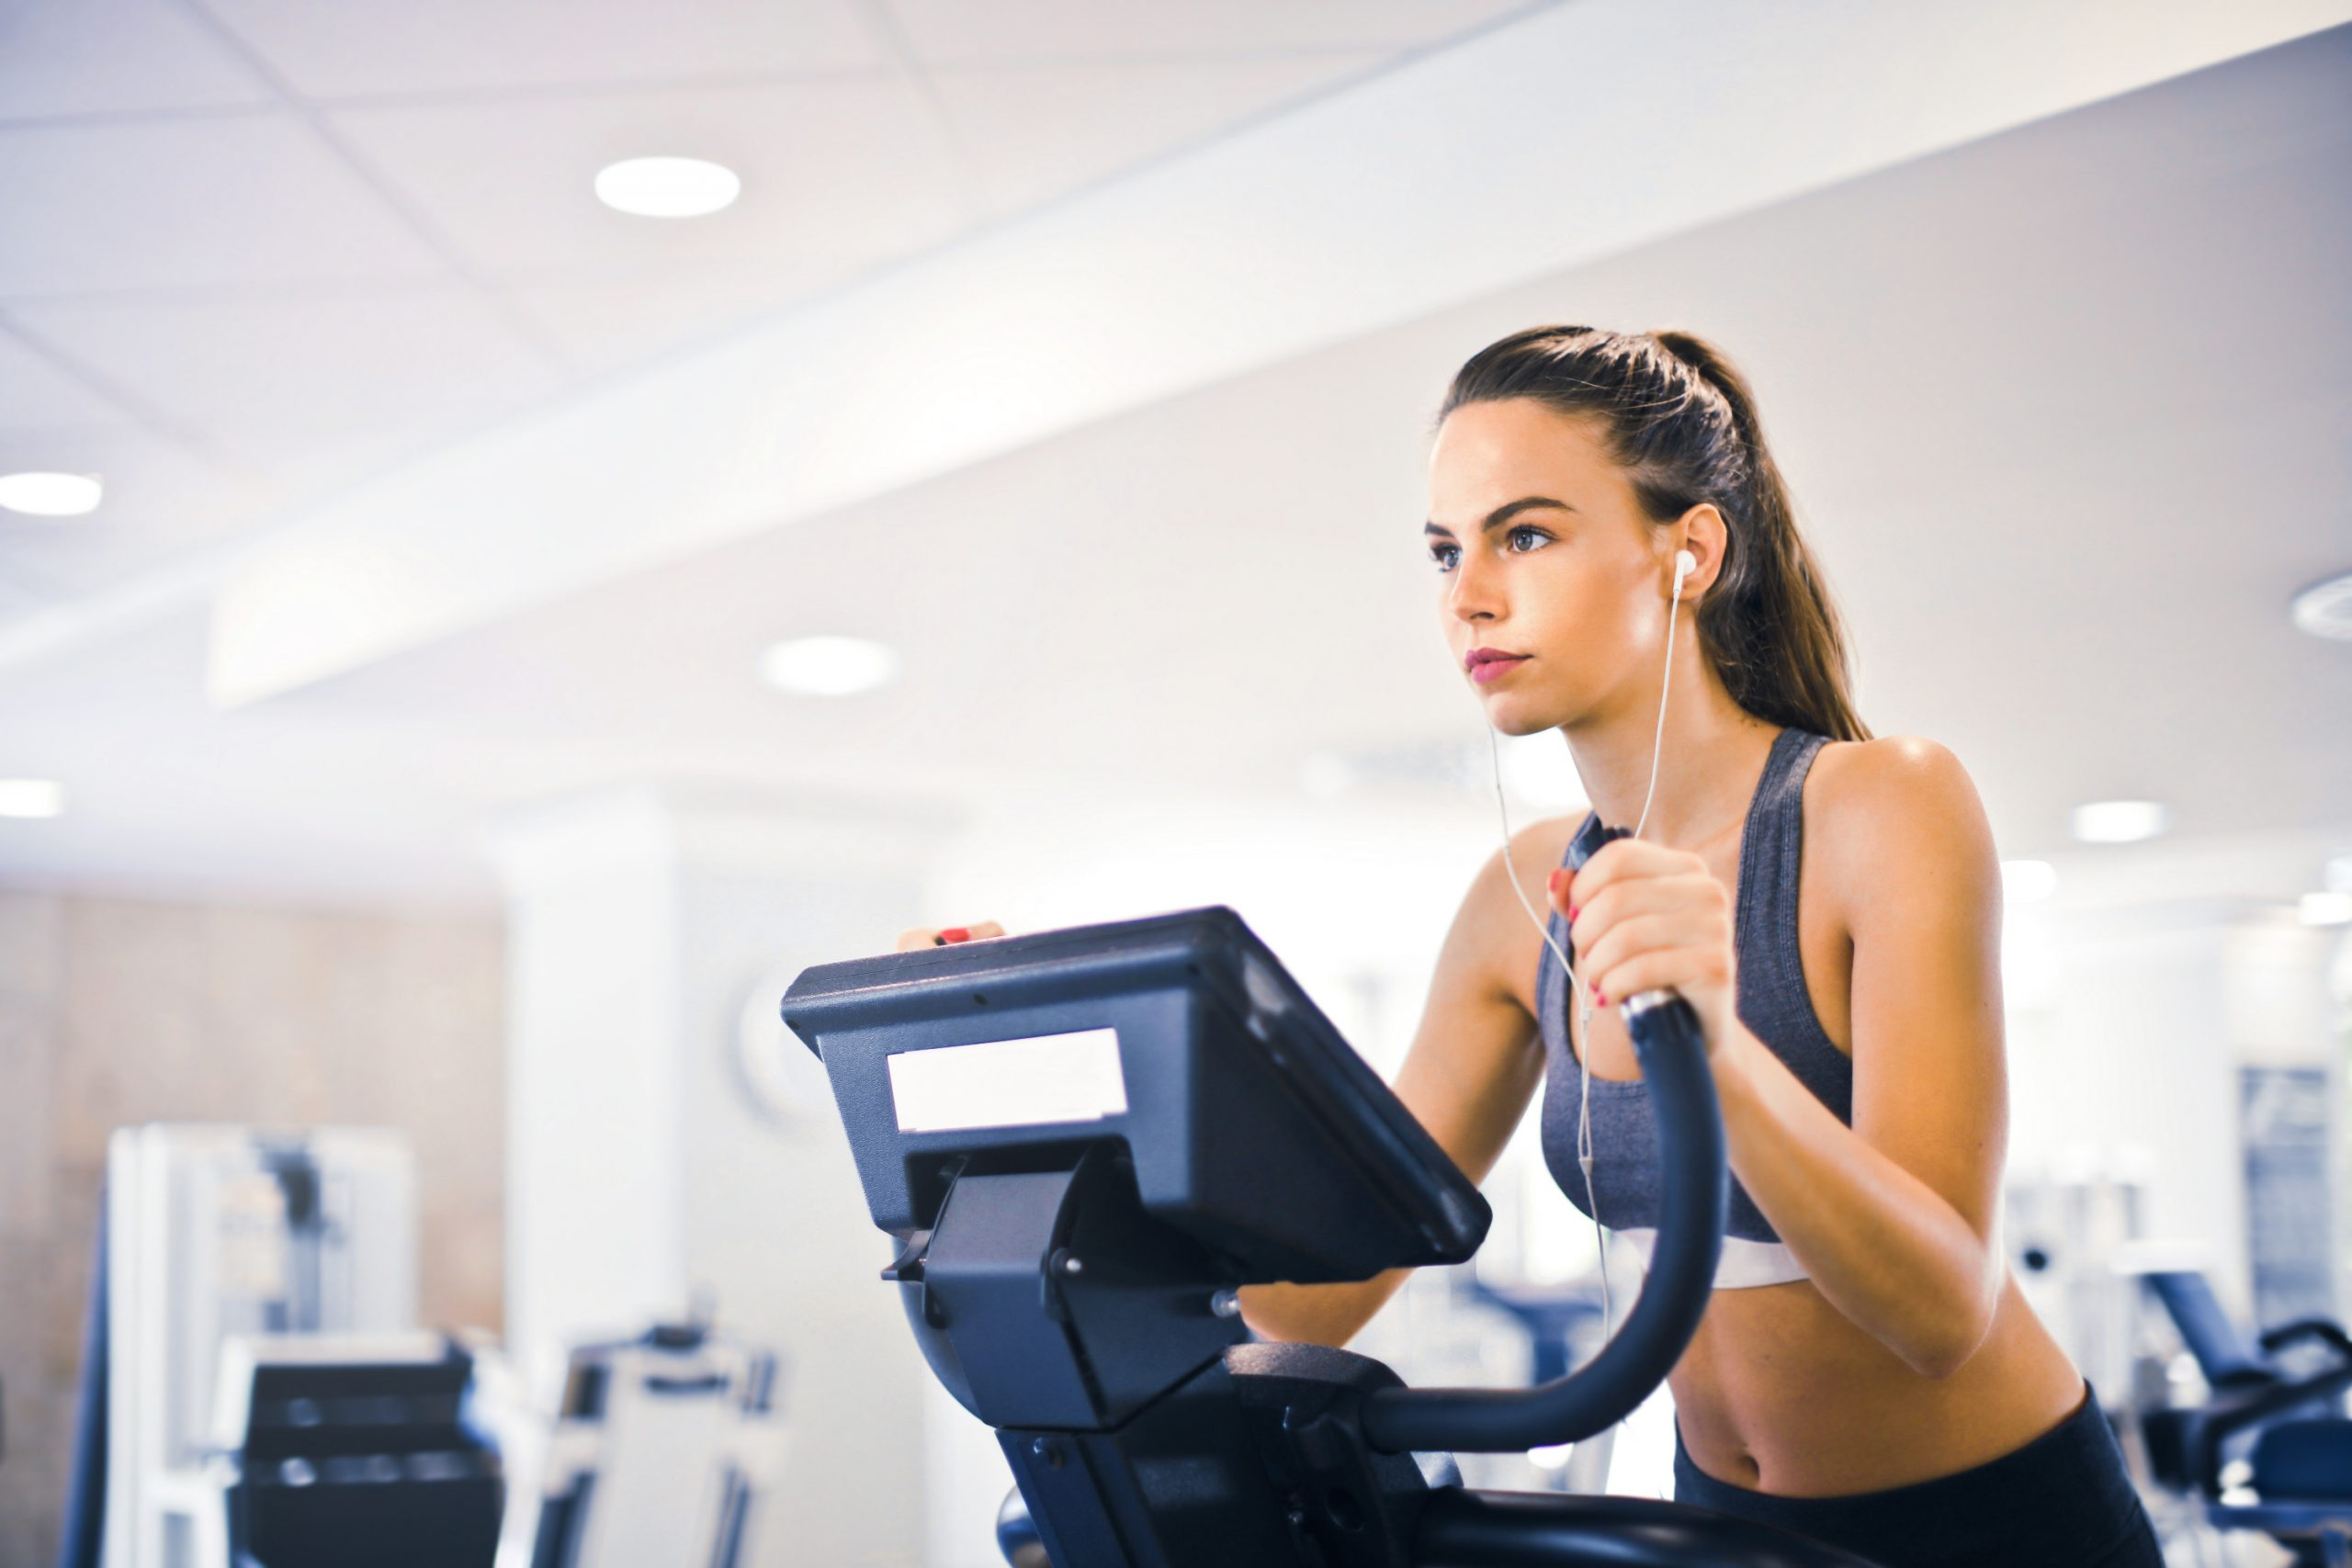 Young female athlete training alone on treadmill in modern gym